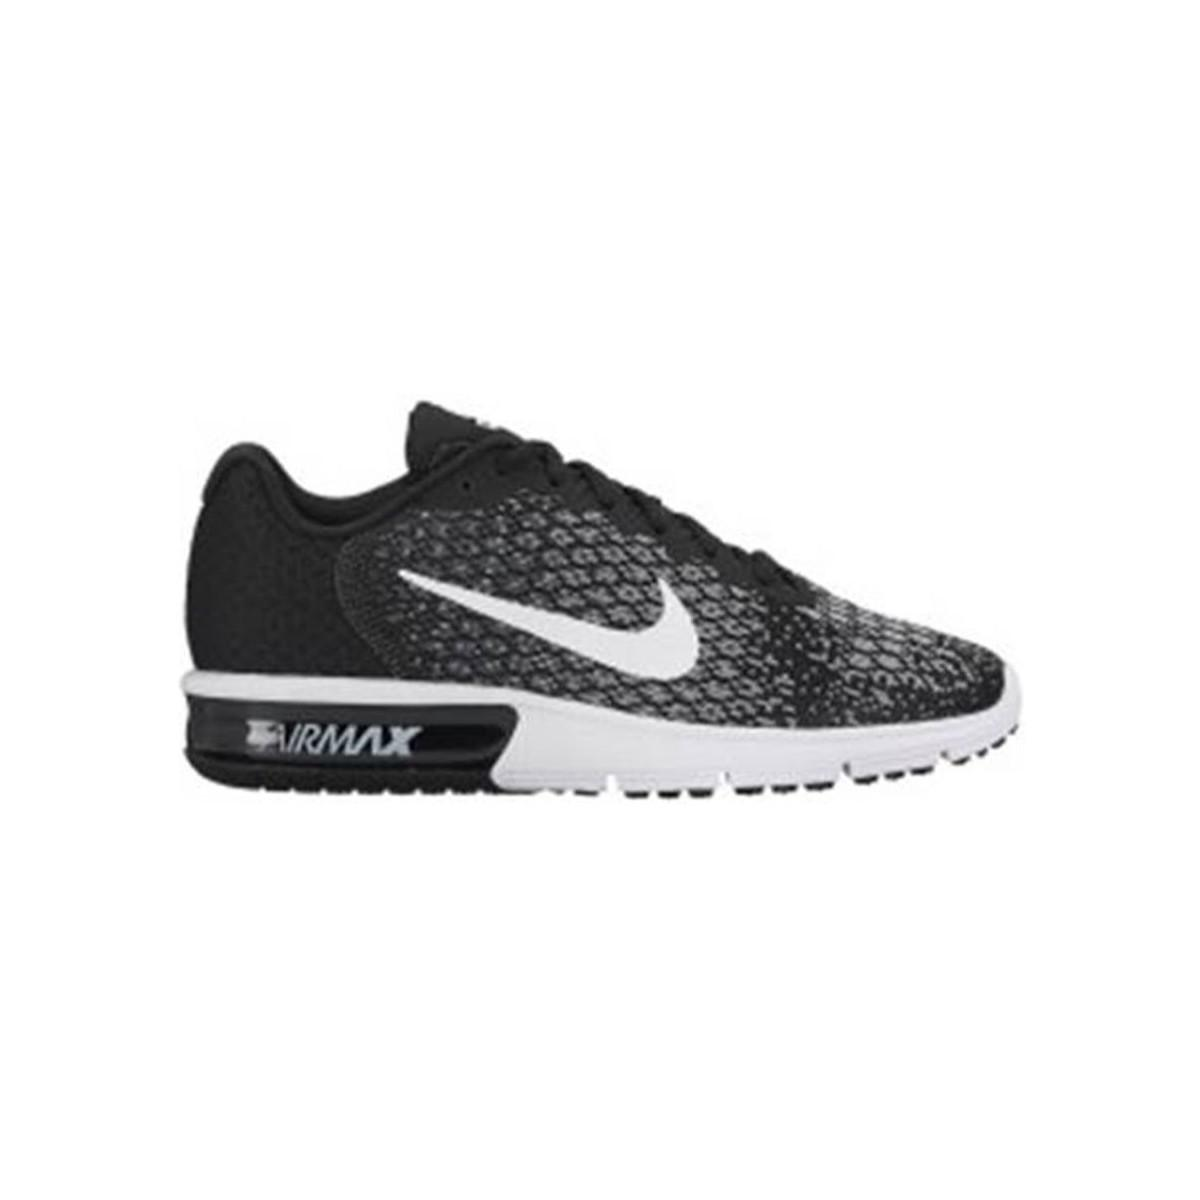 37ed045c32 Nike Wmns Air Max Sequent 2 Women's Running Trainers In White in ...